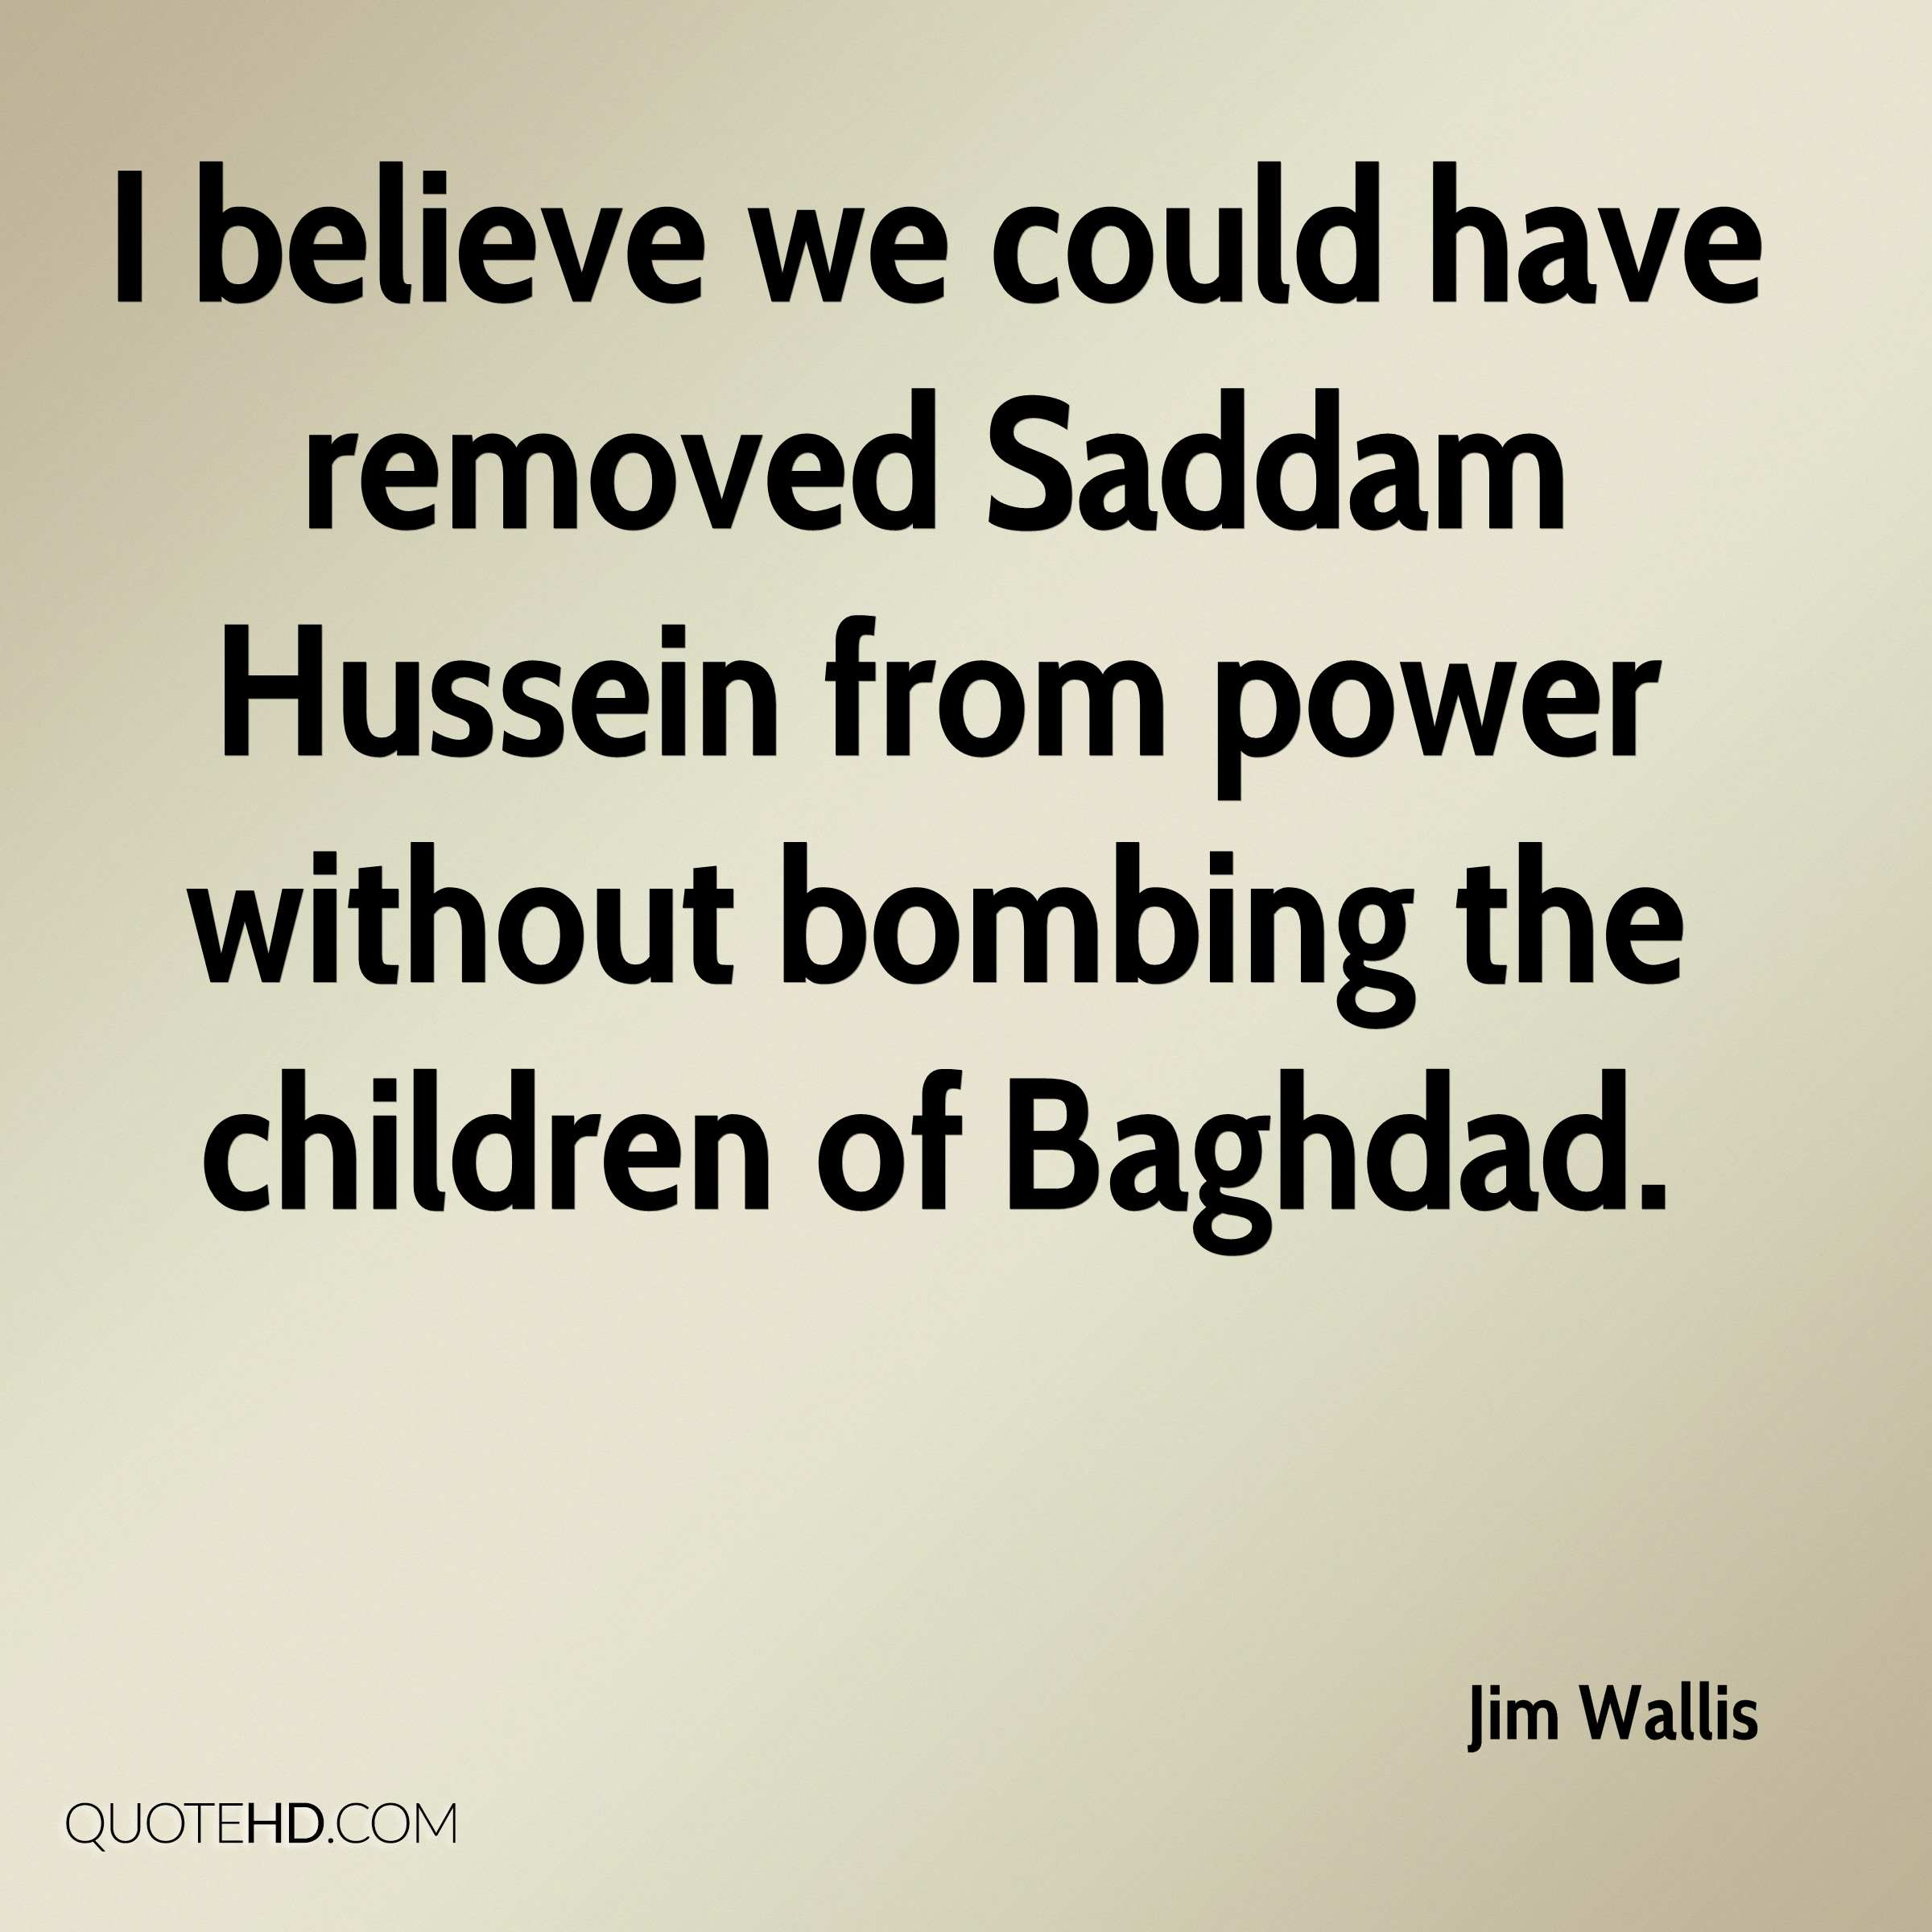 I believe we could have removed Saddam Hussein from power without bombing the children of Baghdad.